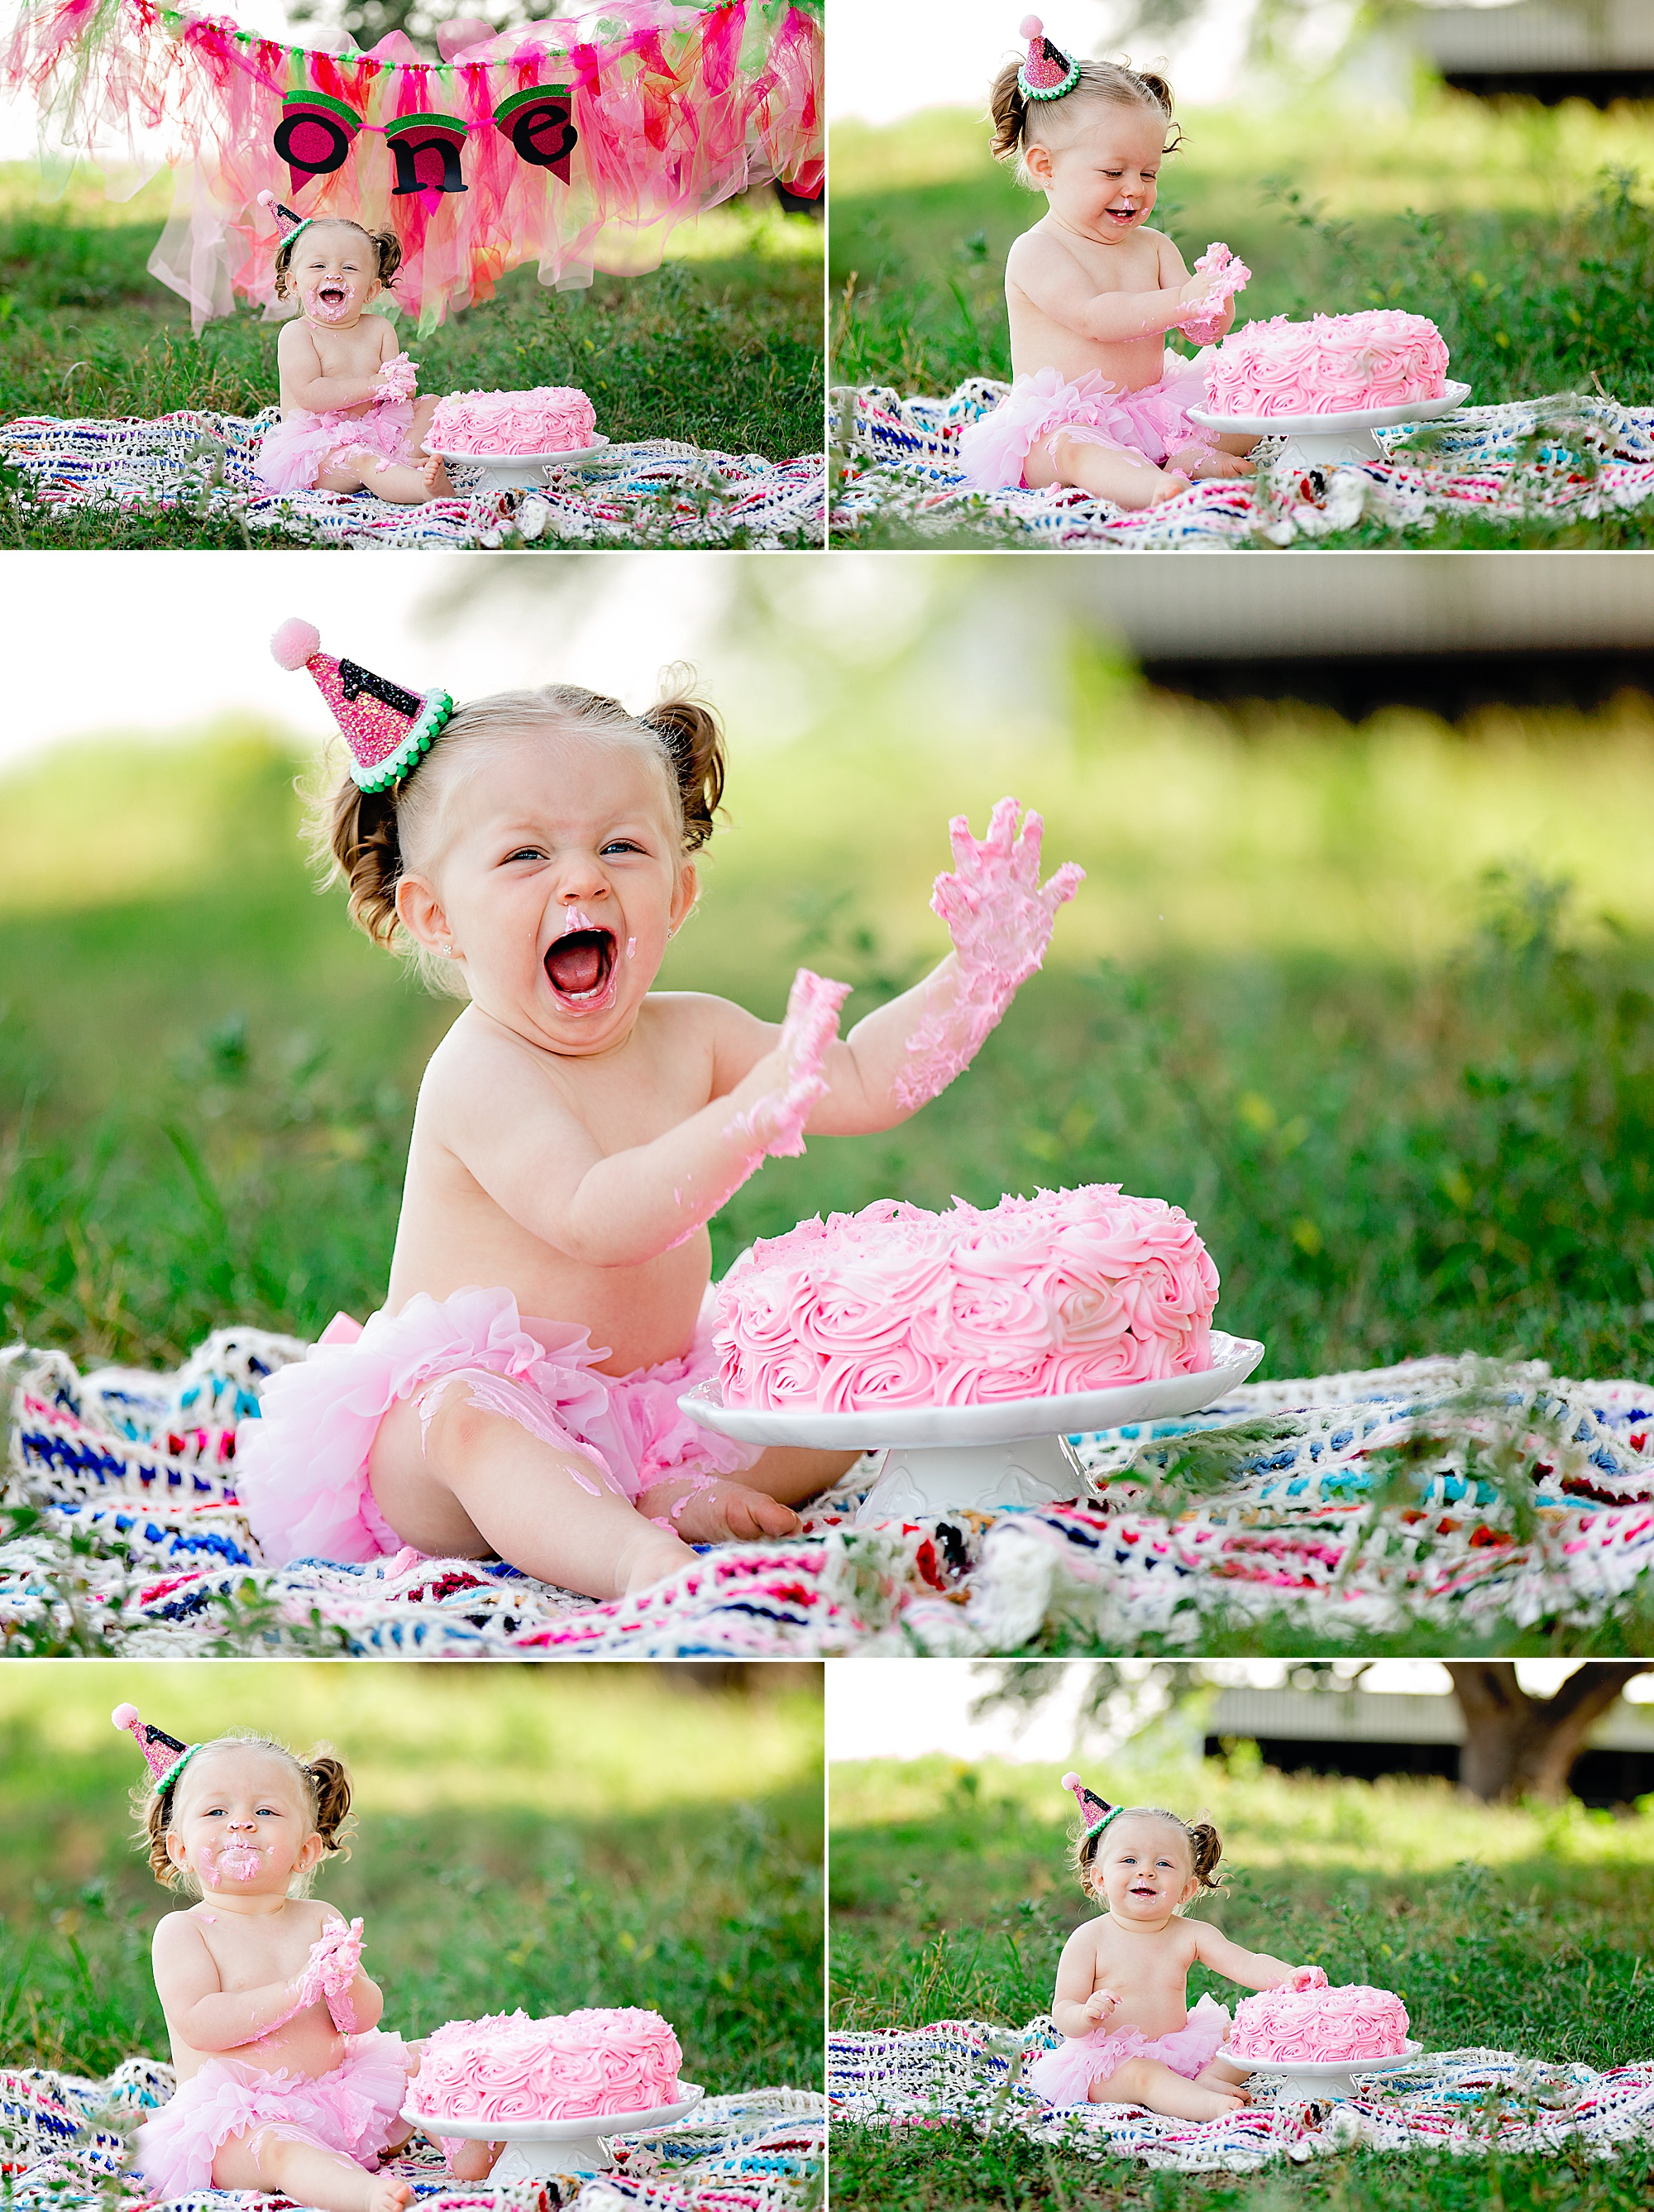 Family-photographer-Cake-Smash-one-year-birthday-pink-theme-carly-barton-photography_0004.jpg